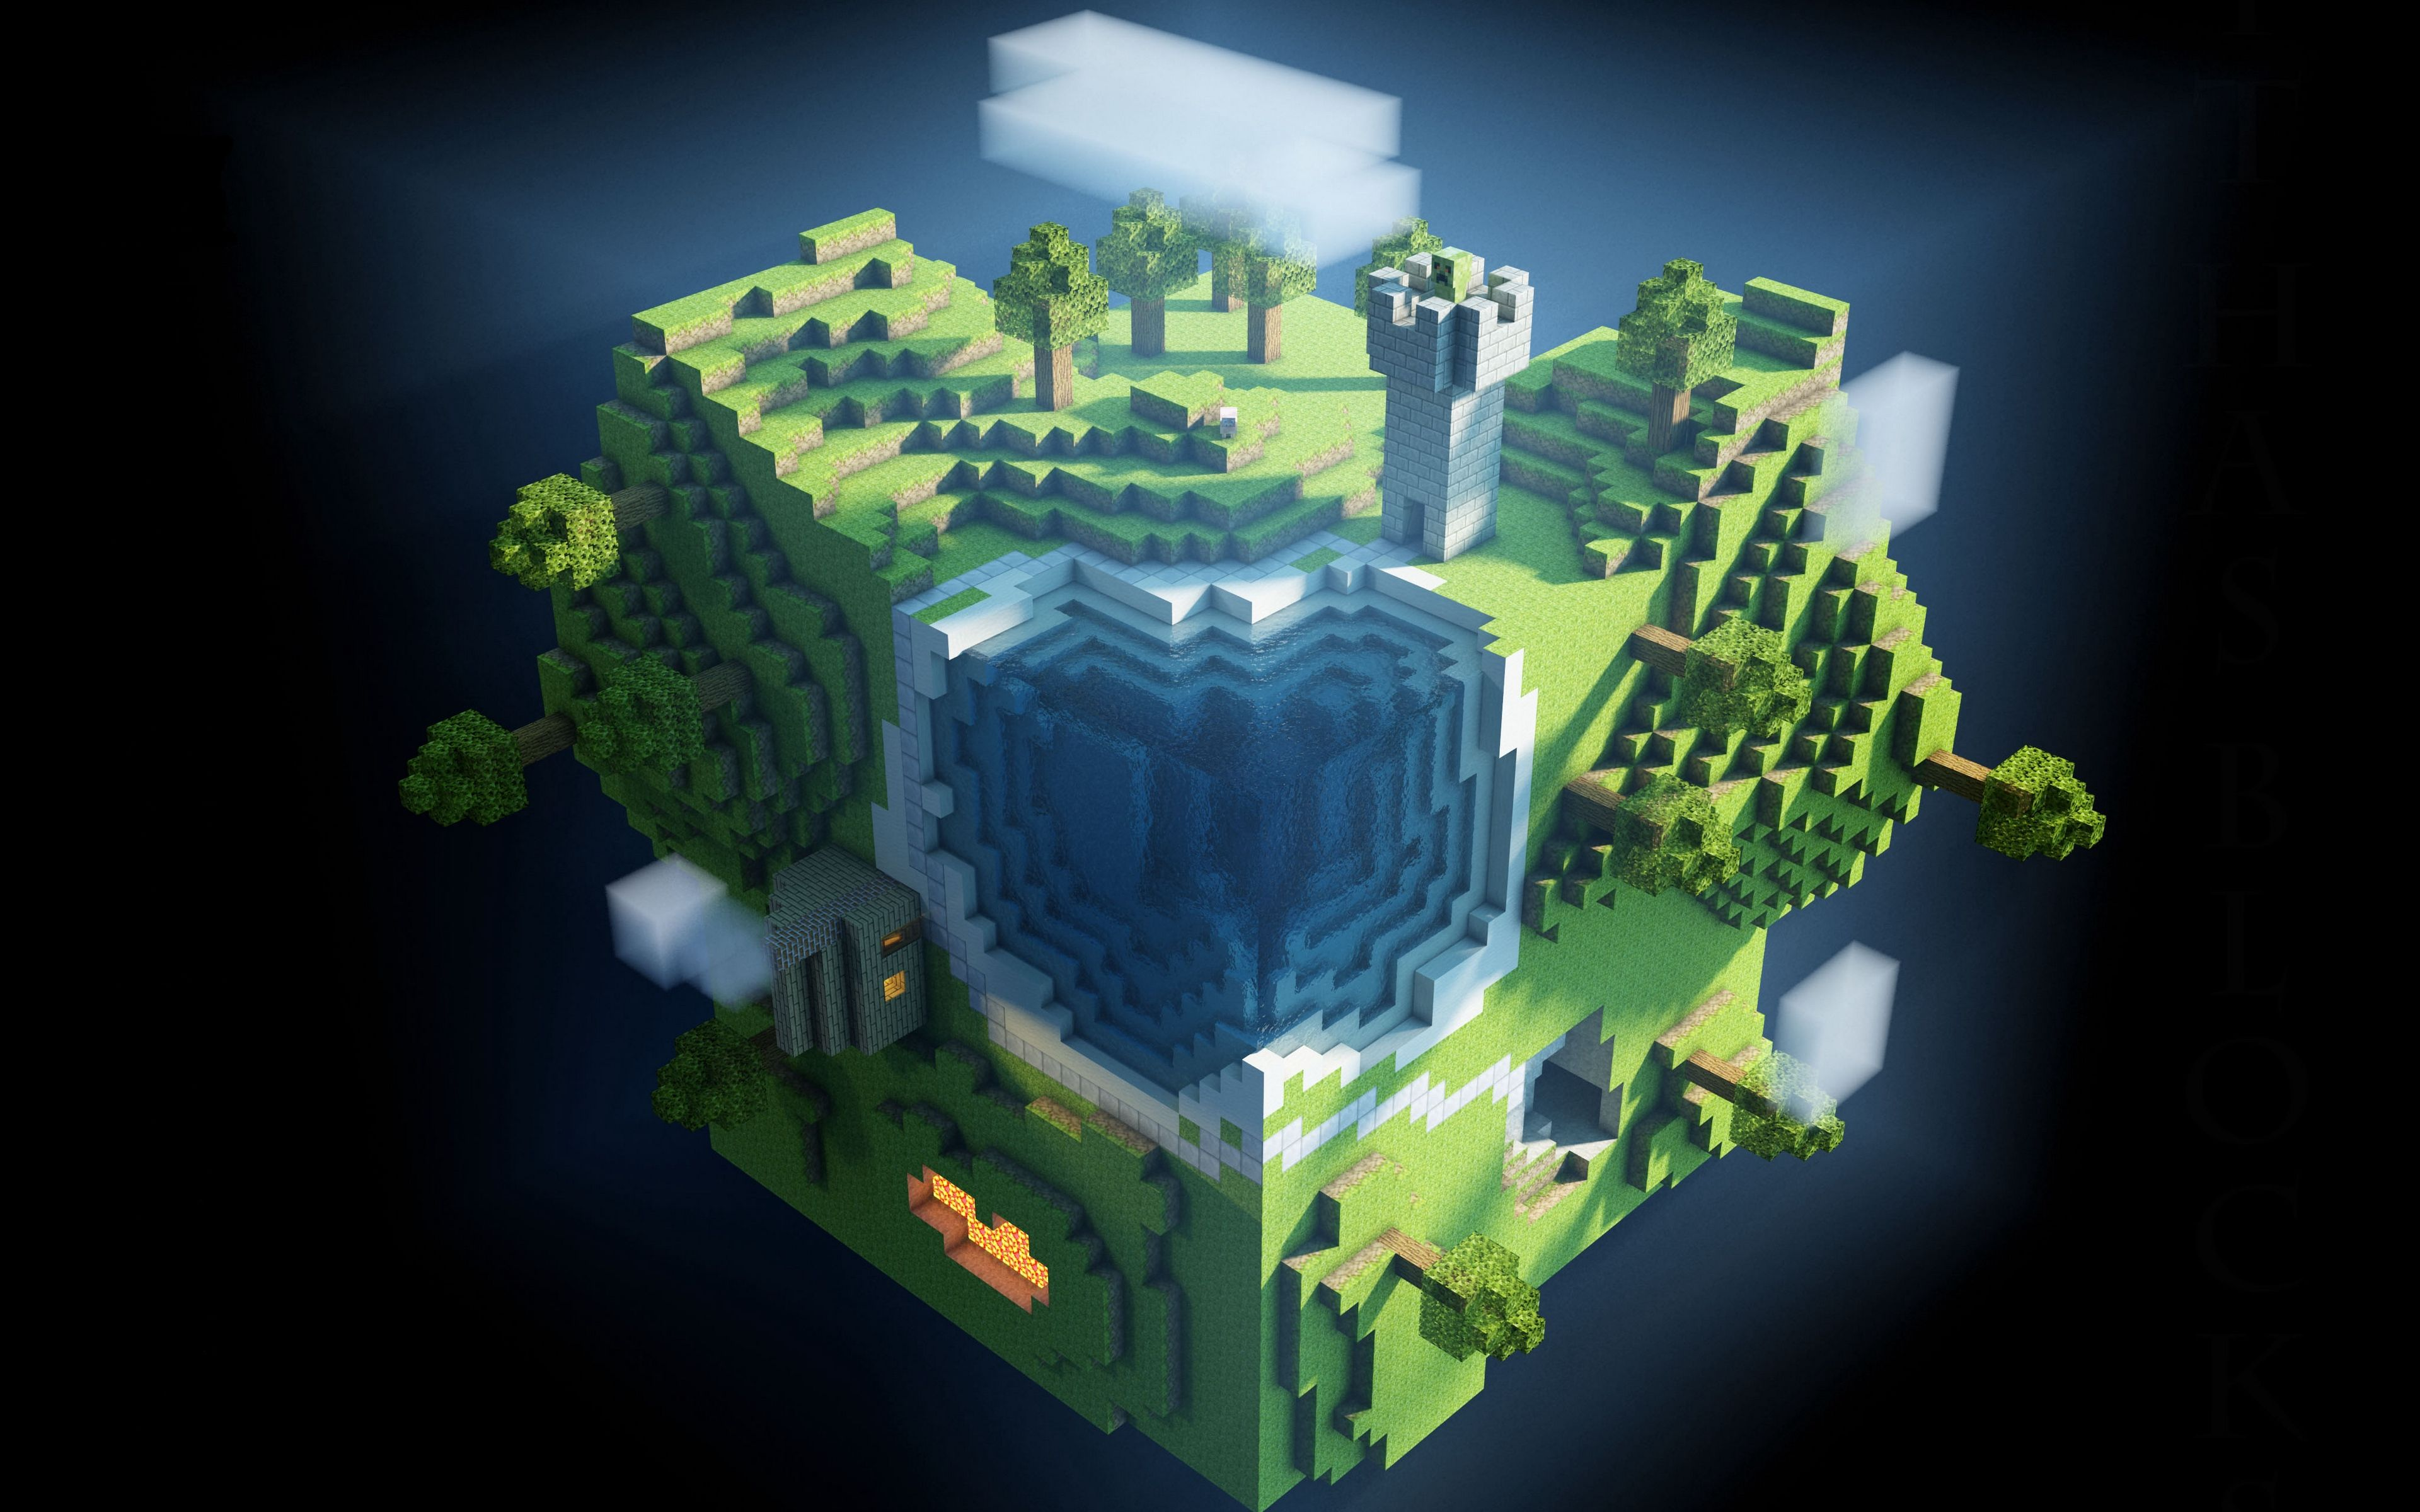 Download Wallpaper 3840x2400 Minecraft Planet Cube Cubes World 4k Ultra Hd 16 10 Hd Background Gambar Ipa